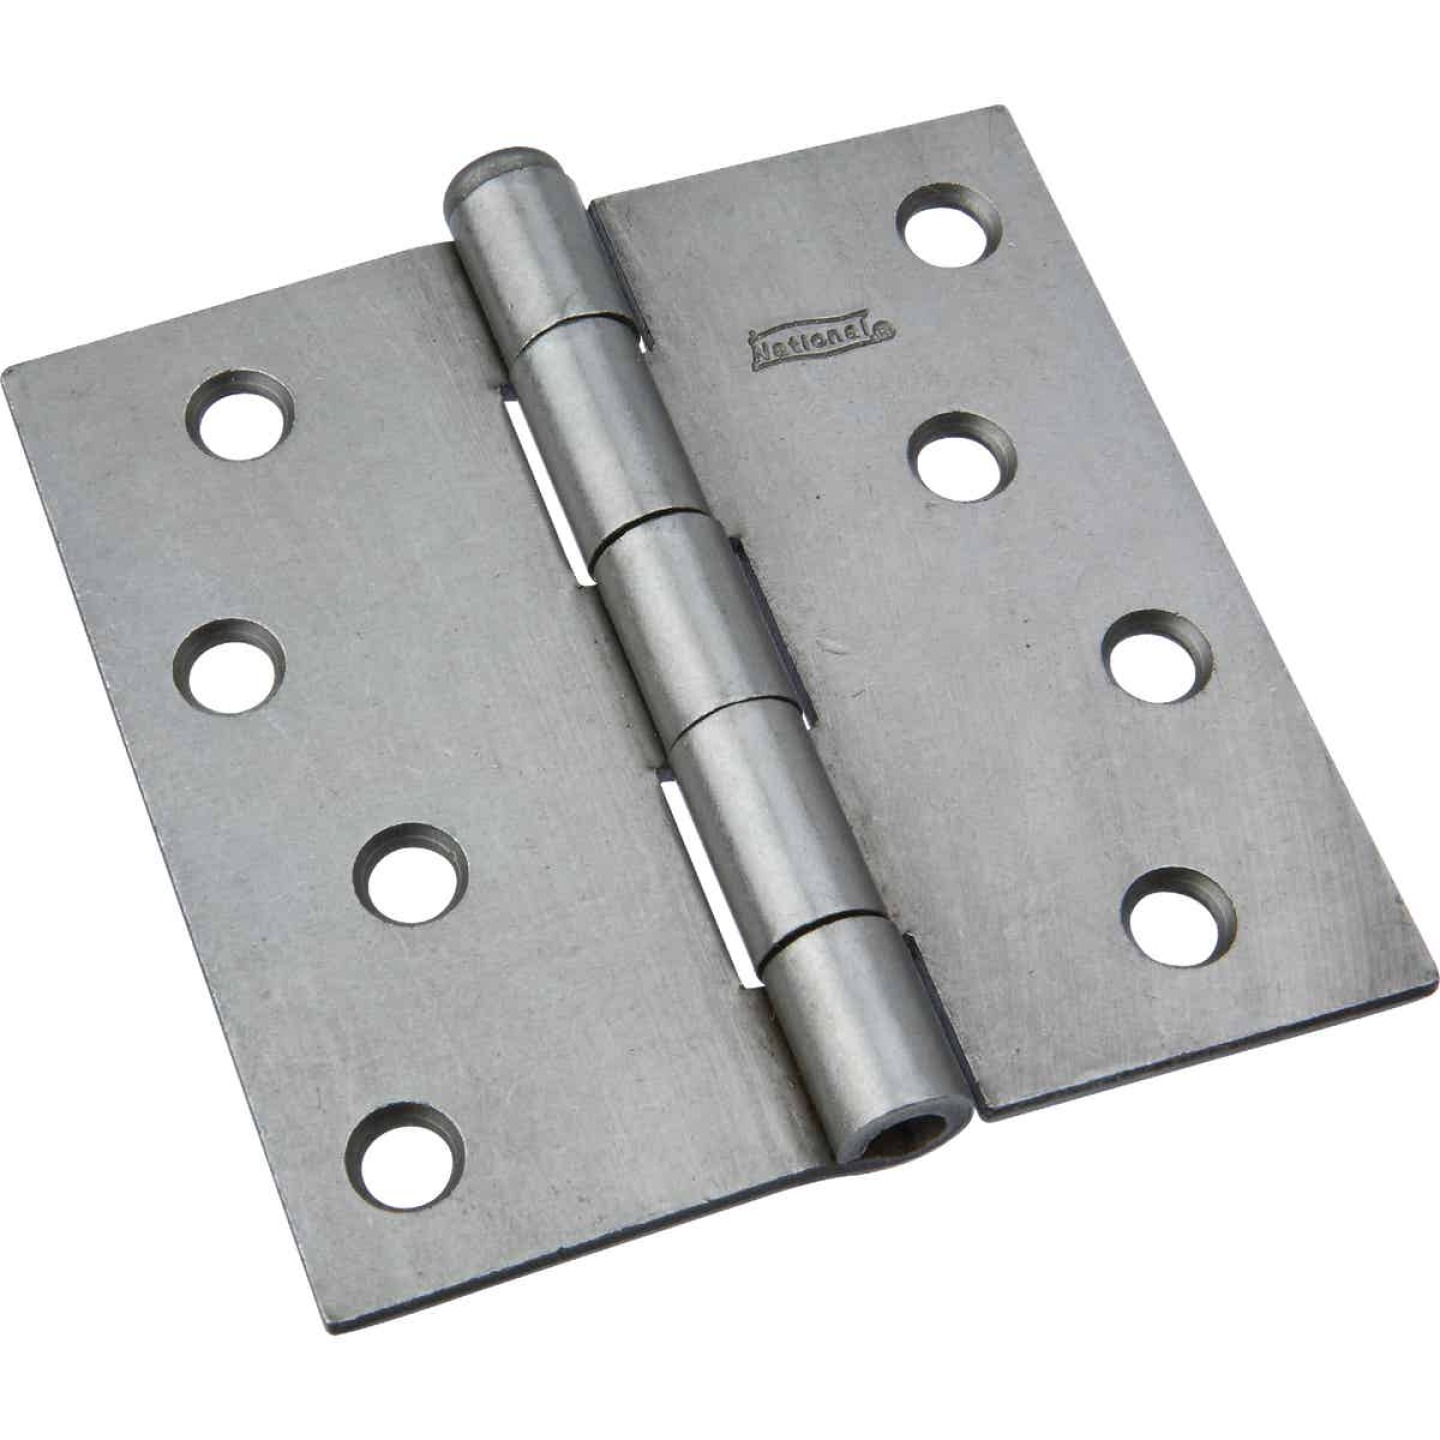 National 4 In. Square Plain Steel Broad Door Hinge Image 1